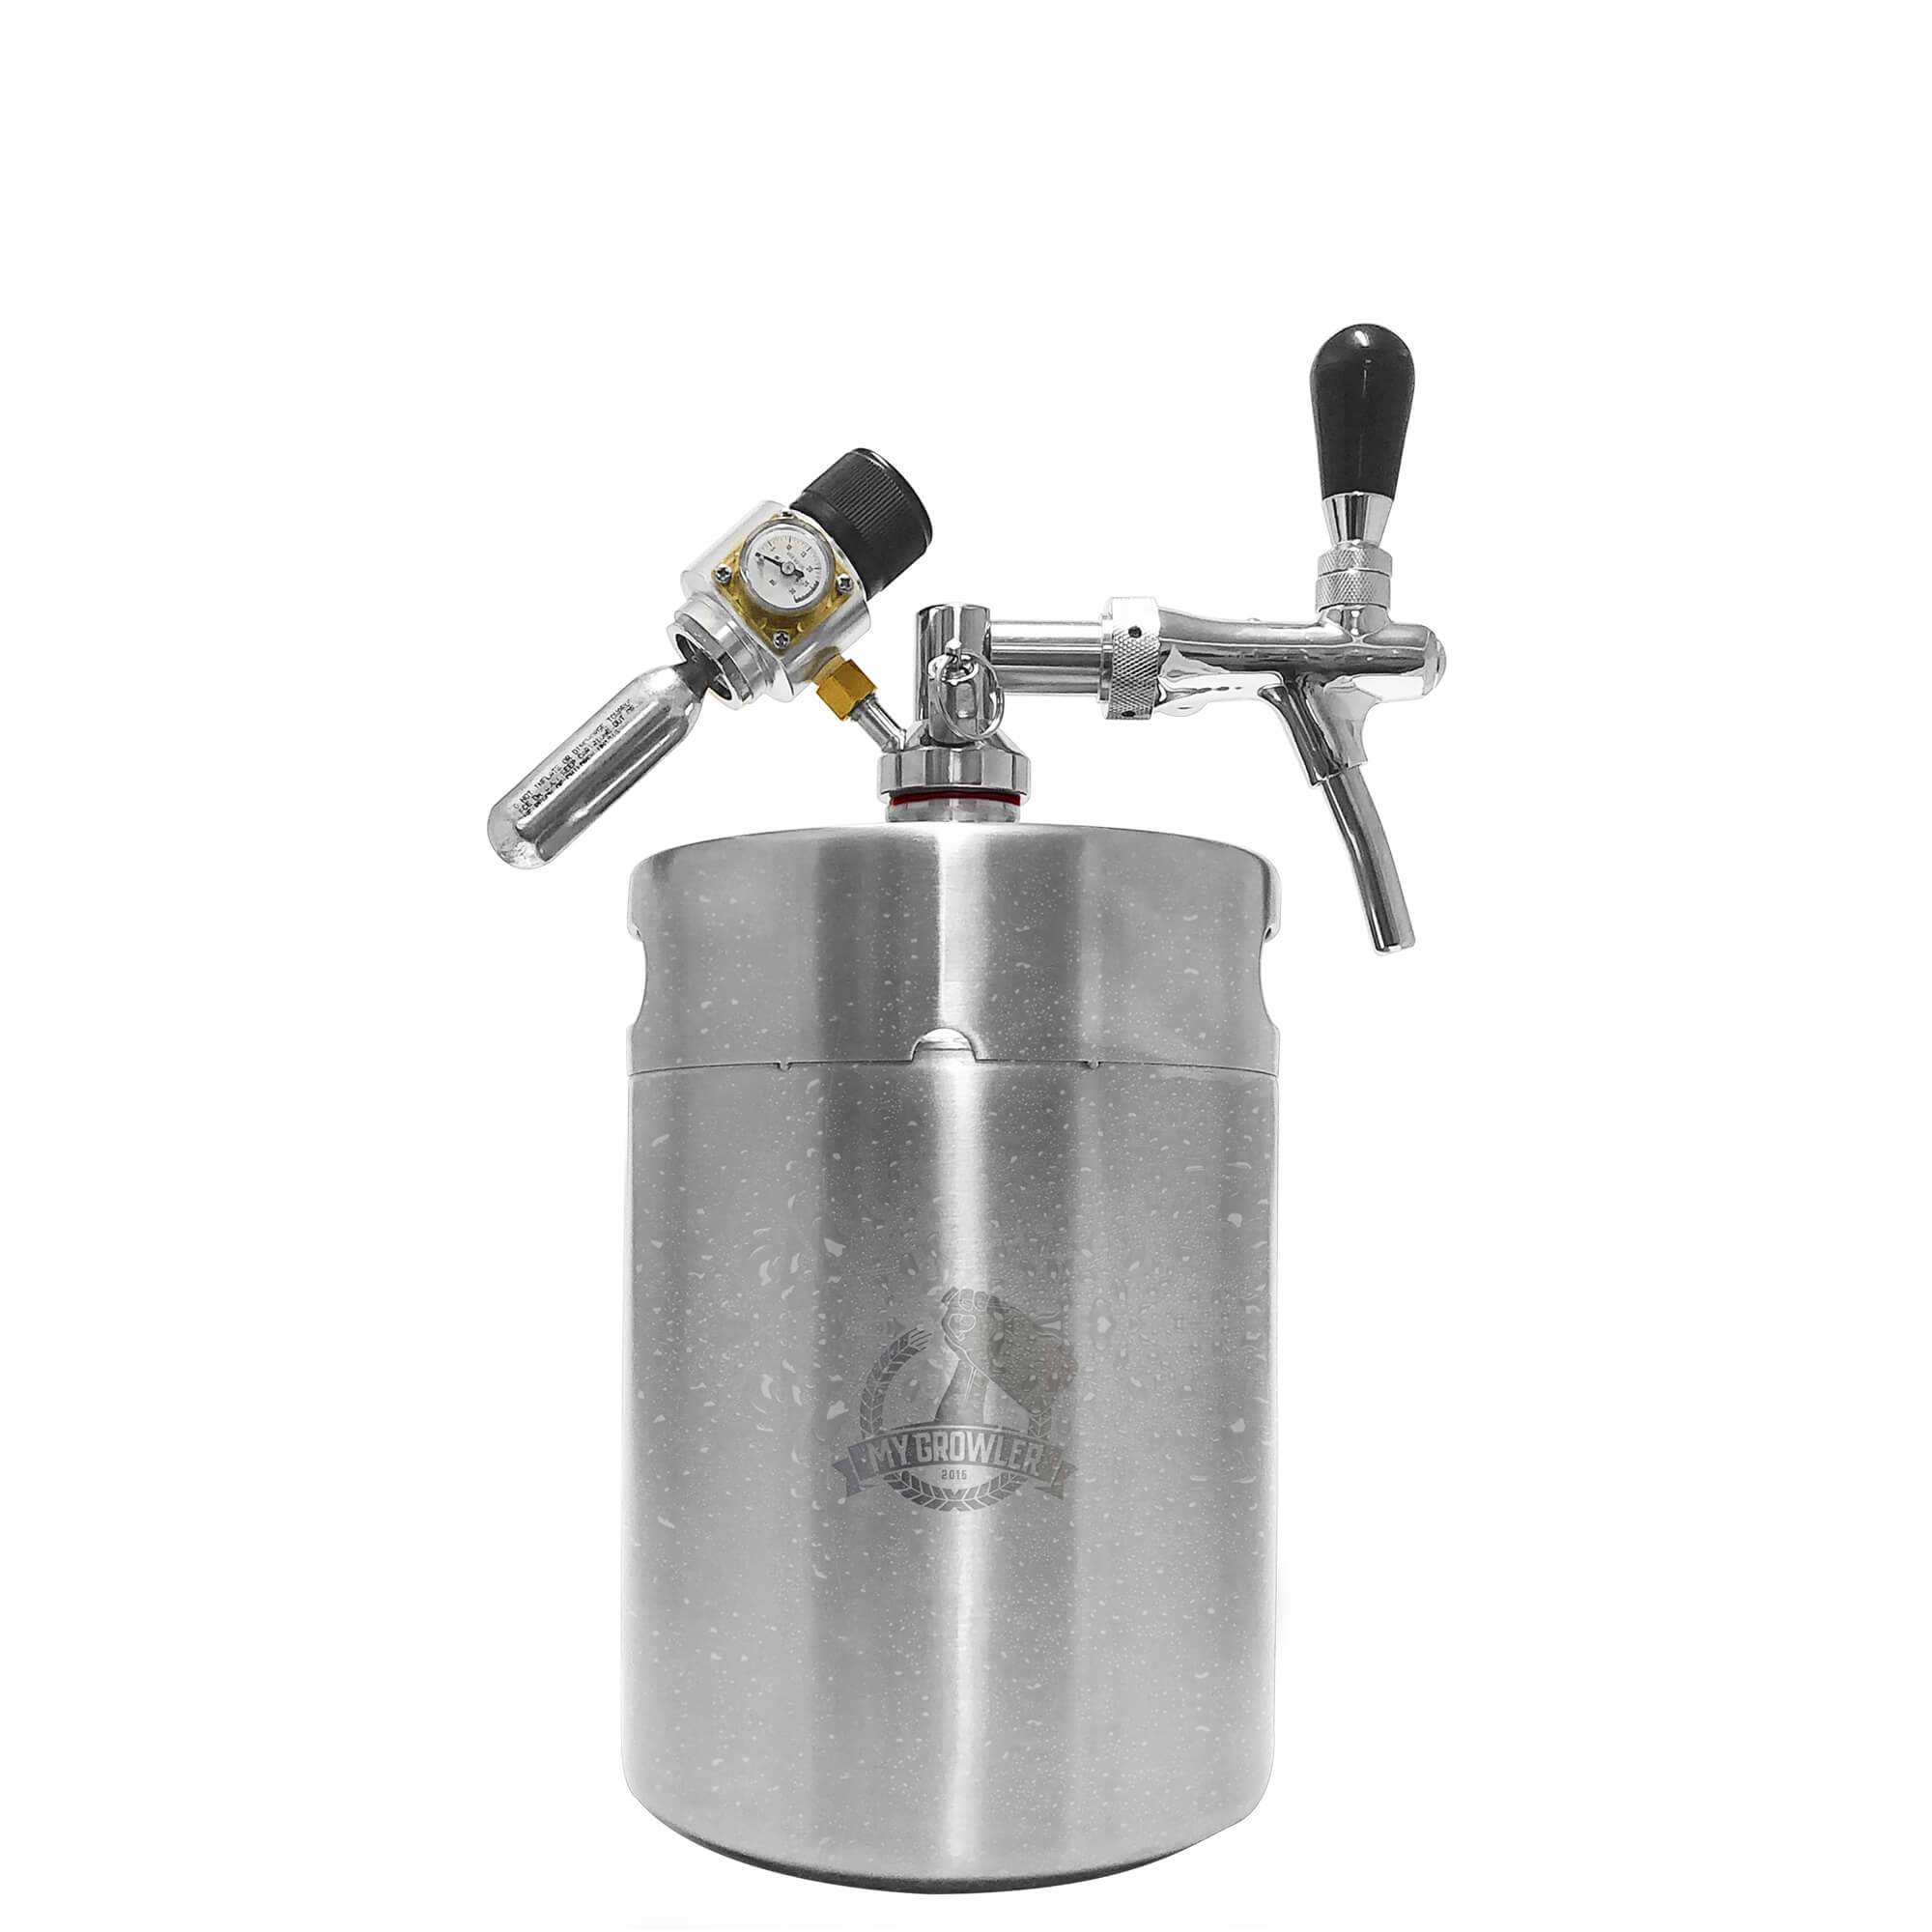 Kit My Keg Growler Inox 5L com Torneira Italiana Premium